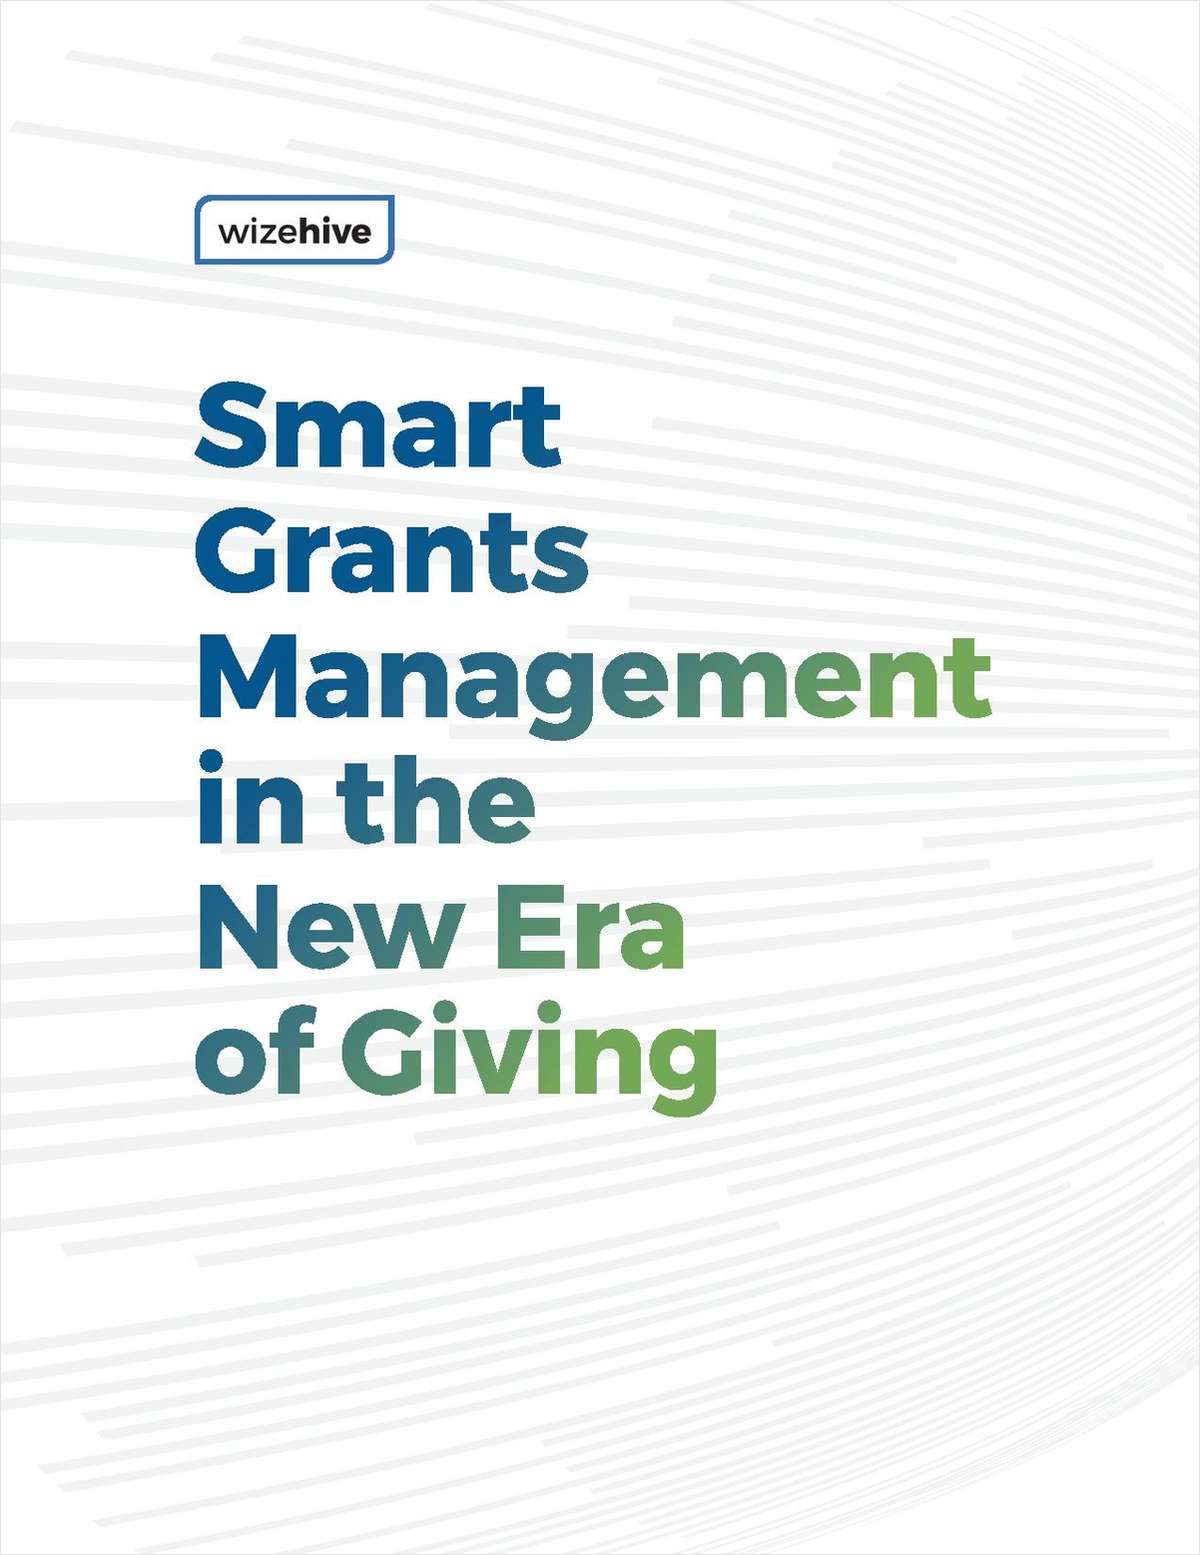 Smart Grants Management in the New Era of Giving